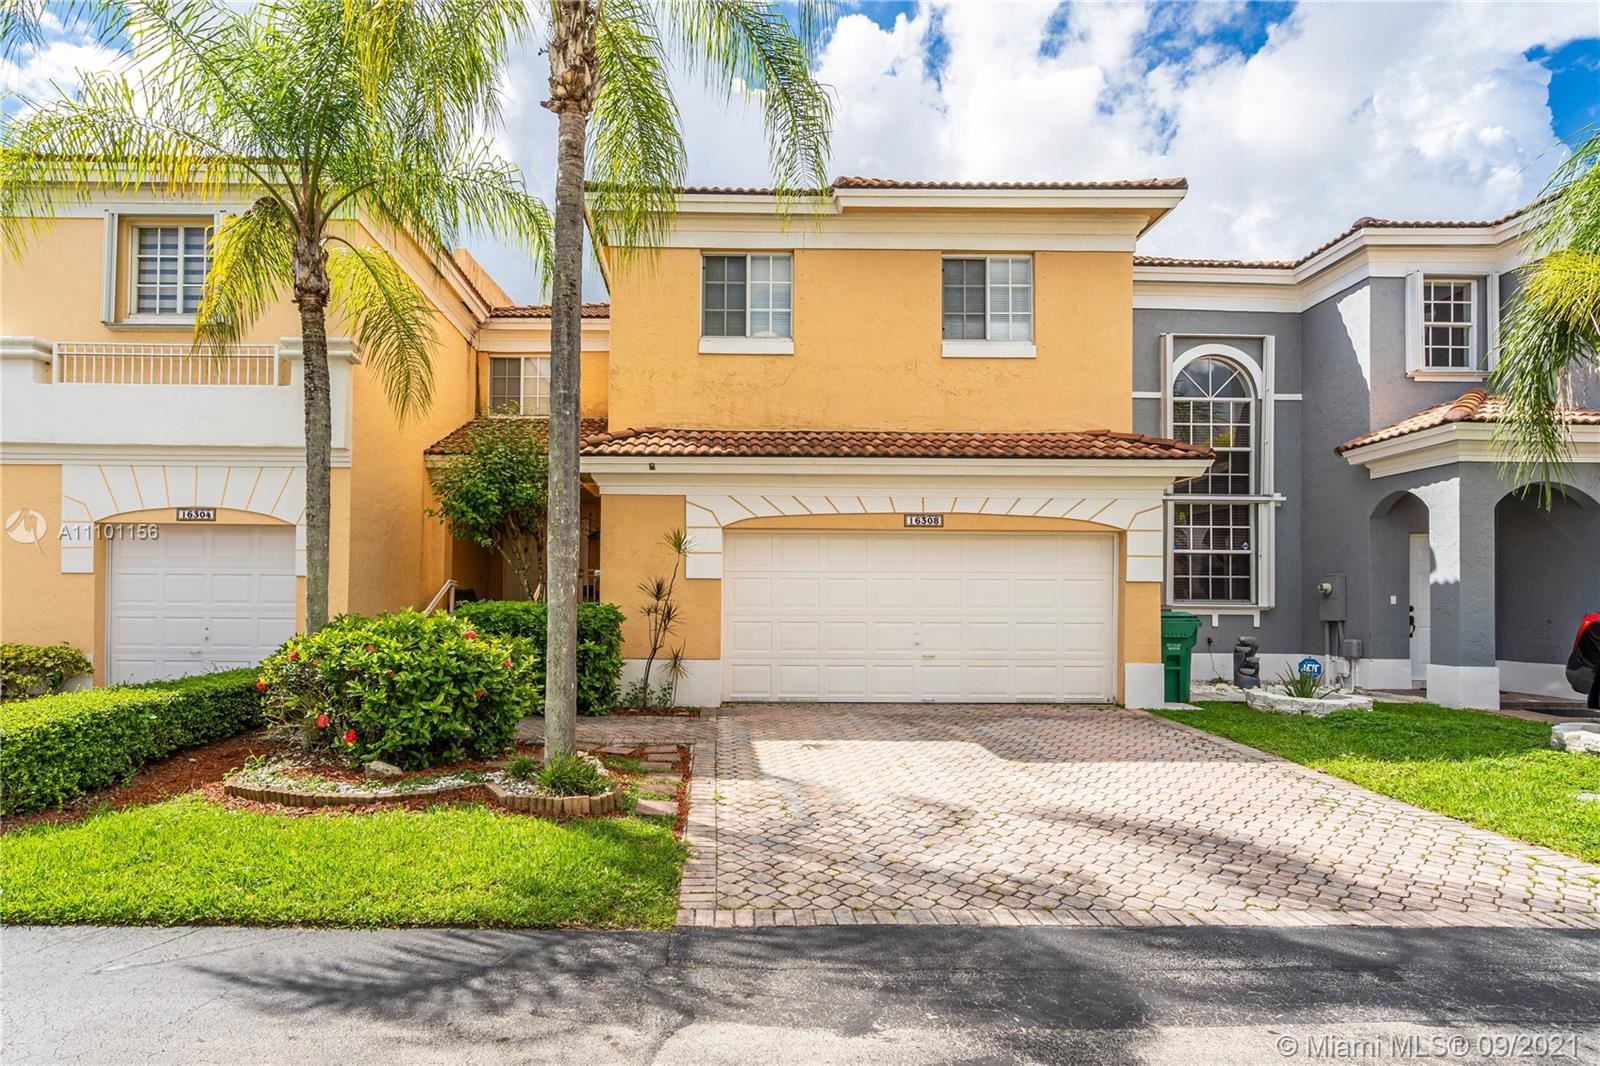 Photo of 16308 SW 103rd Ter #16308, Miami, FL 33196 (MLS # A11101156)